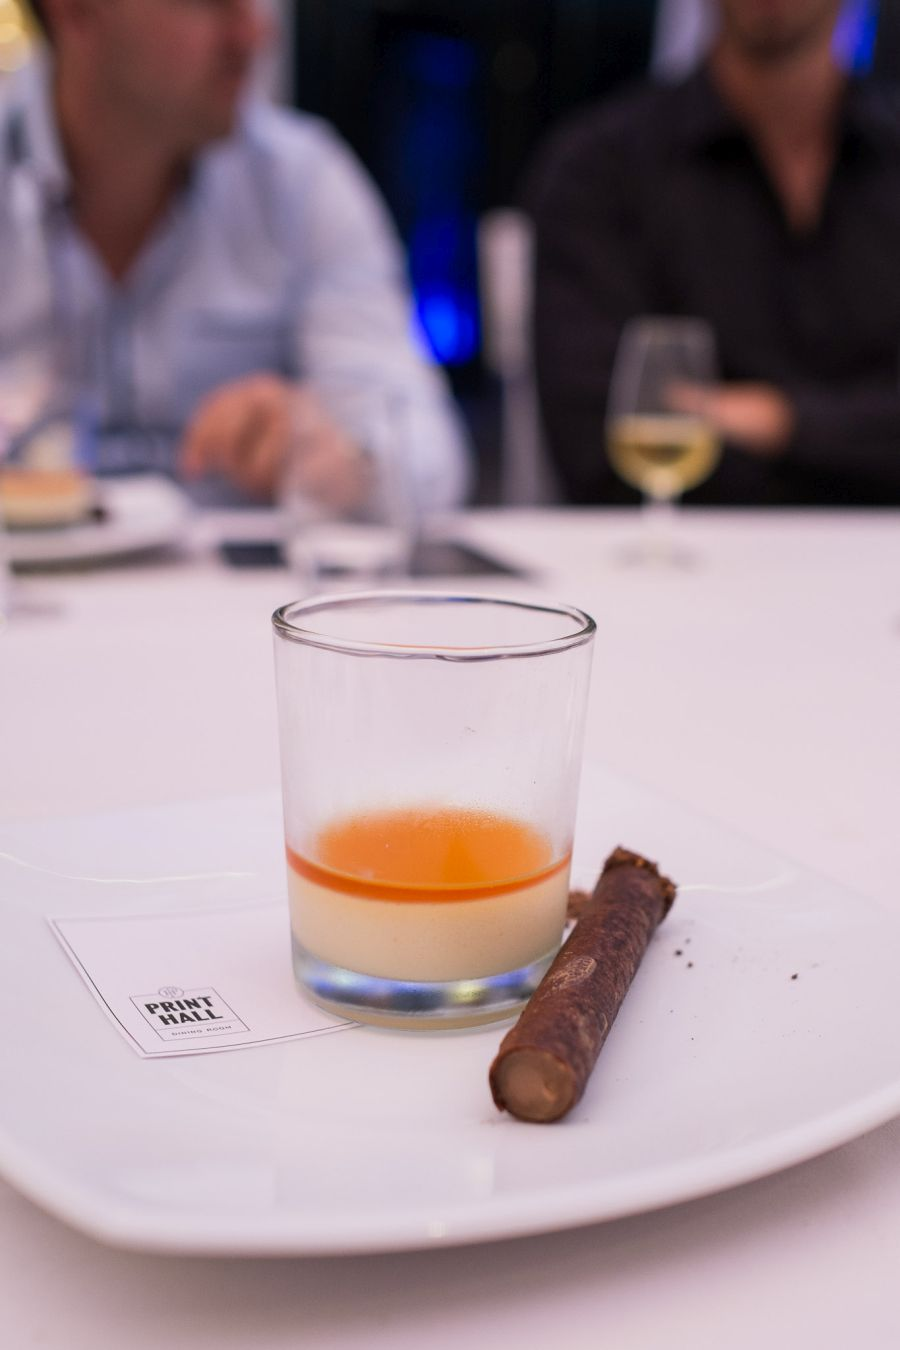 Dessert (Print Hall) - 'Whisky and Cigars' - Lochan Ora-infused cream, cocoa nib cigar